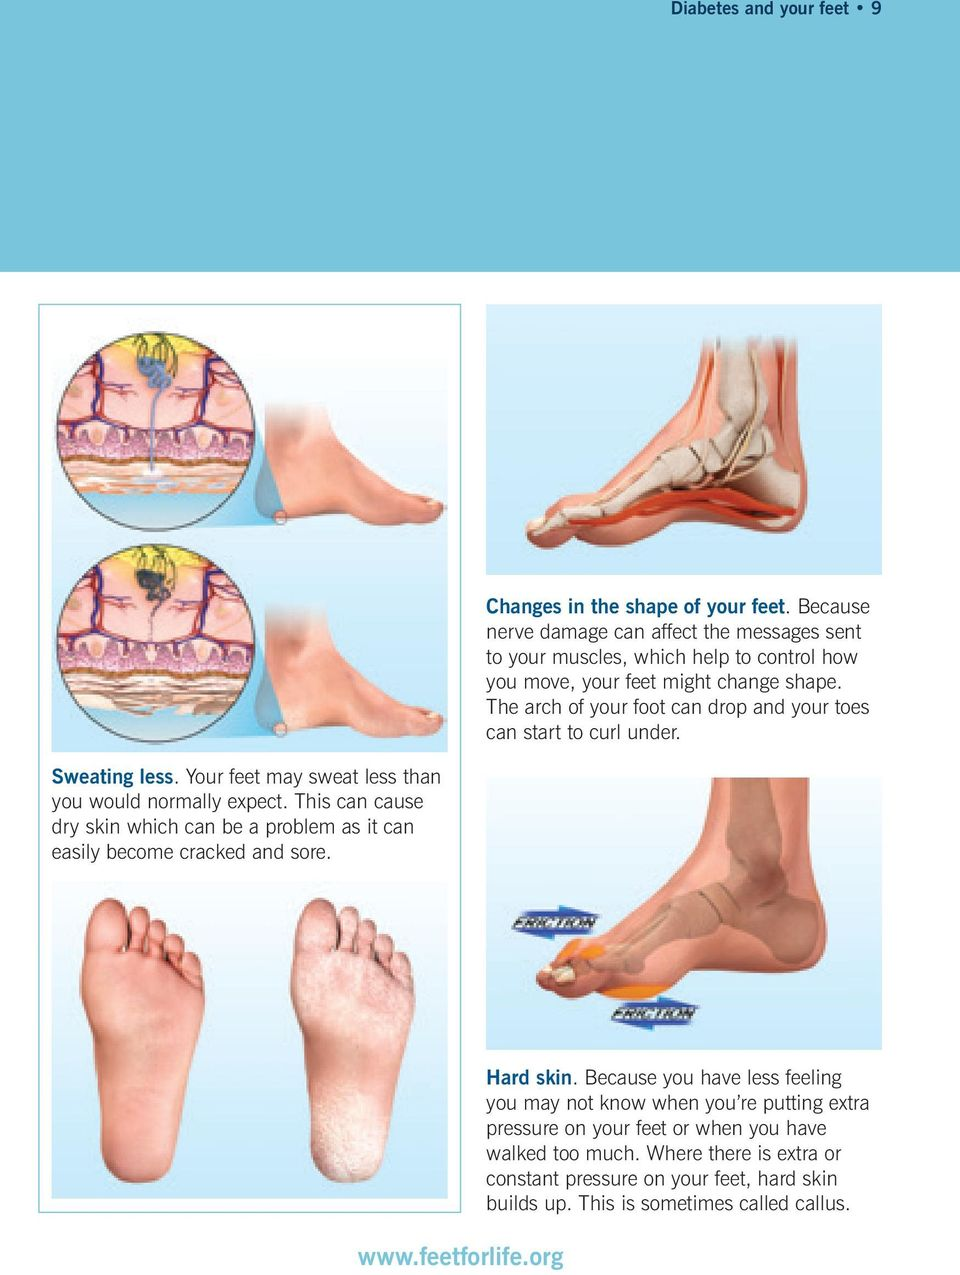 The arch of your foot can drop and your toes can start to curl under. Sweating less. Your feet may sweat less than you would normally expect.